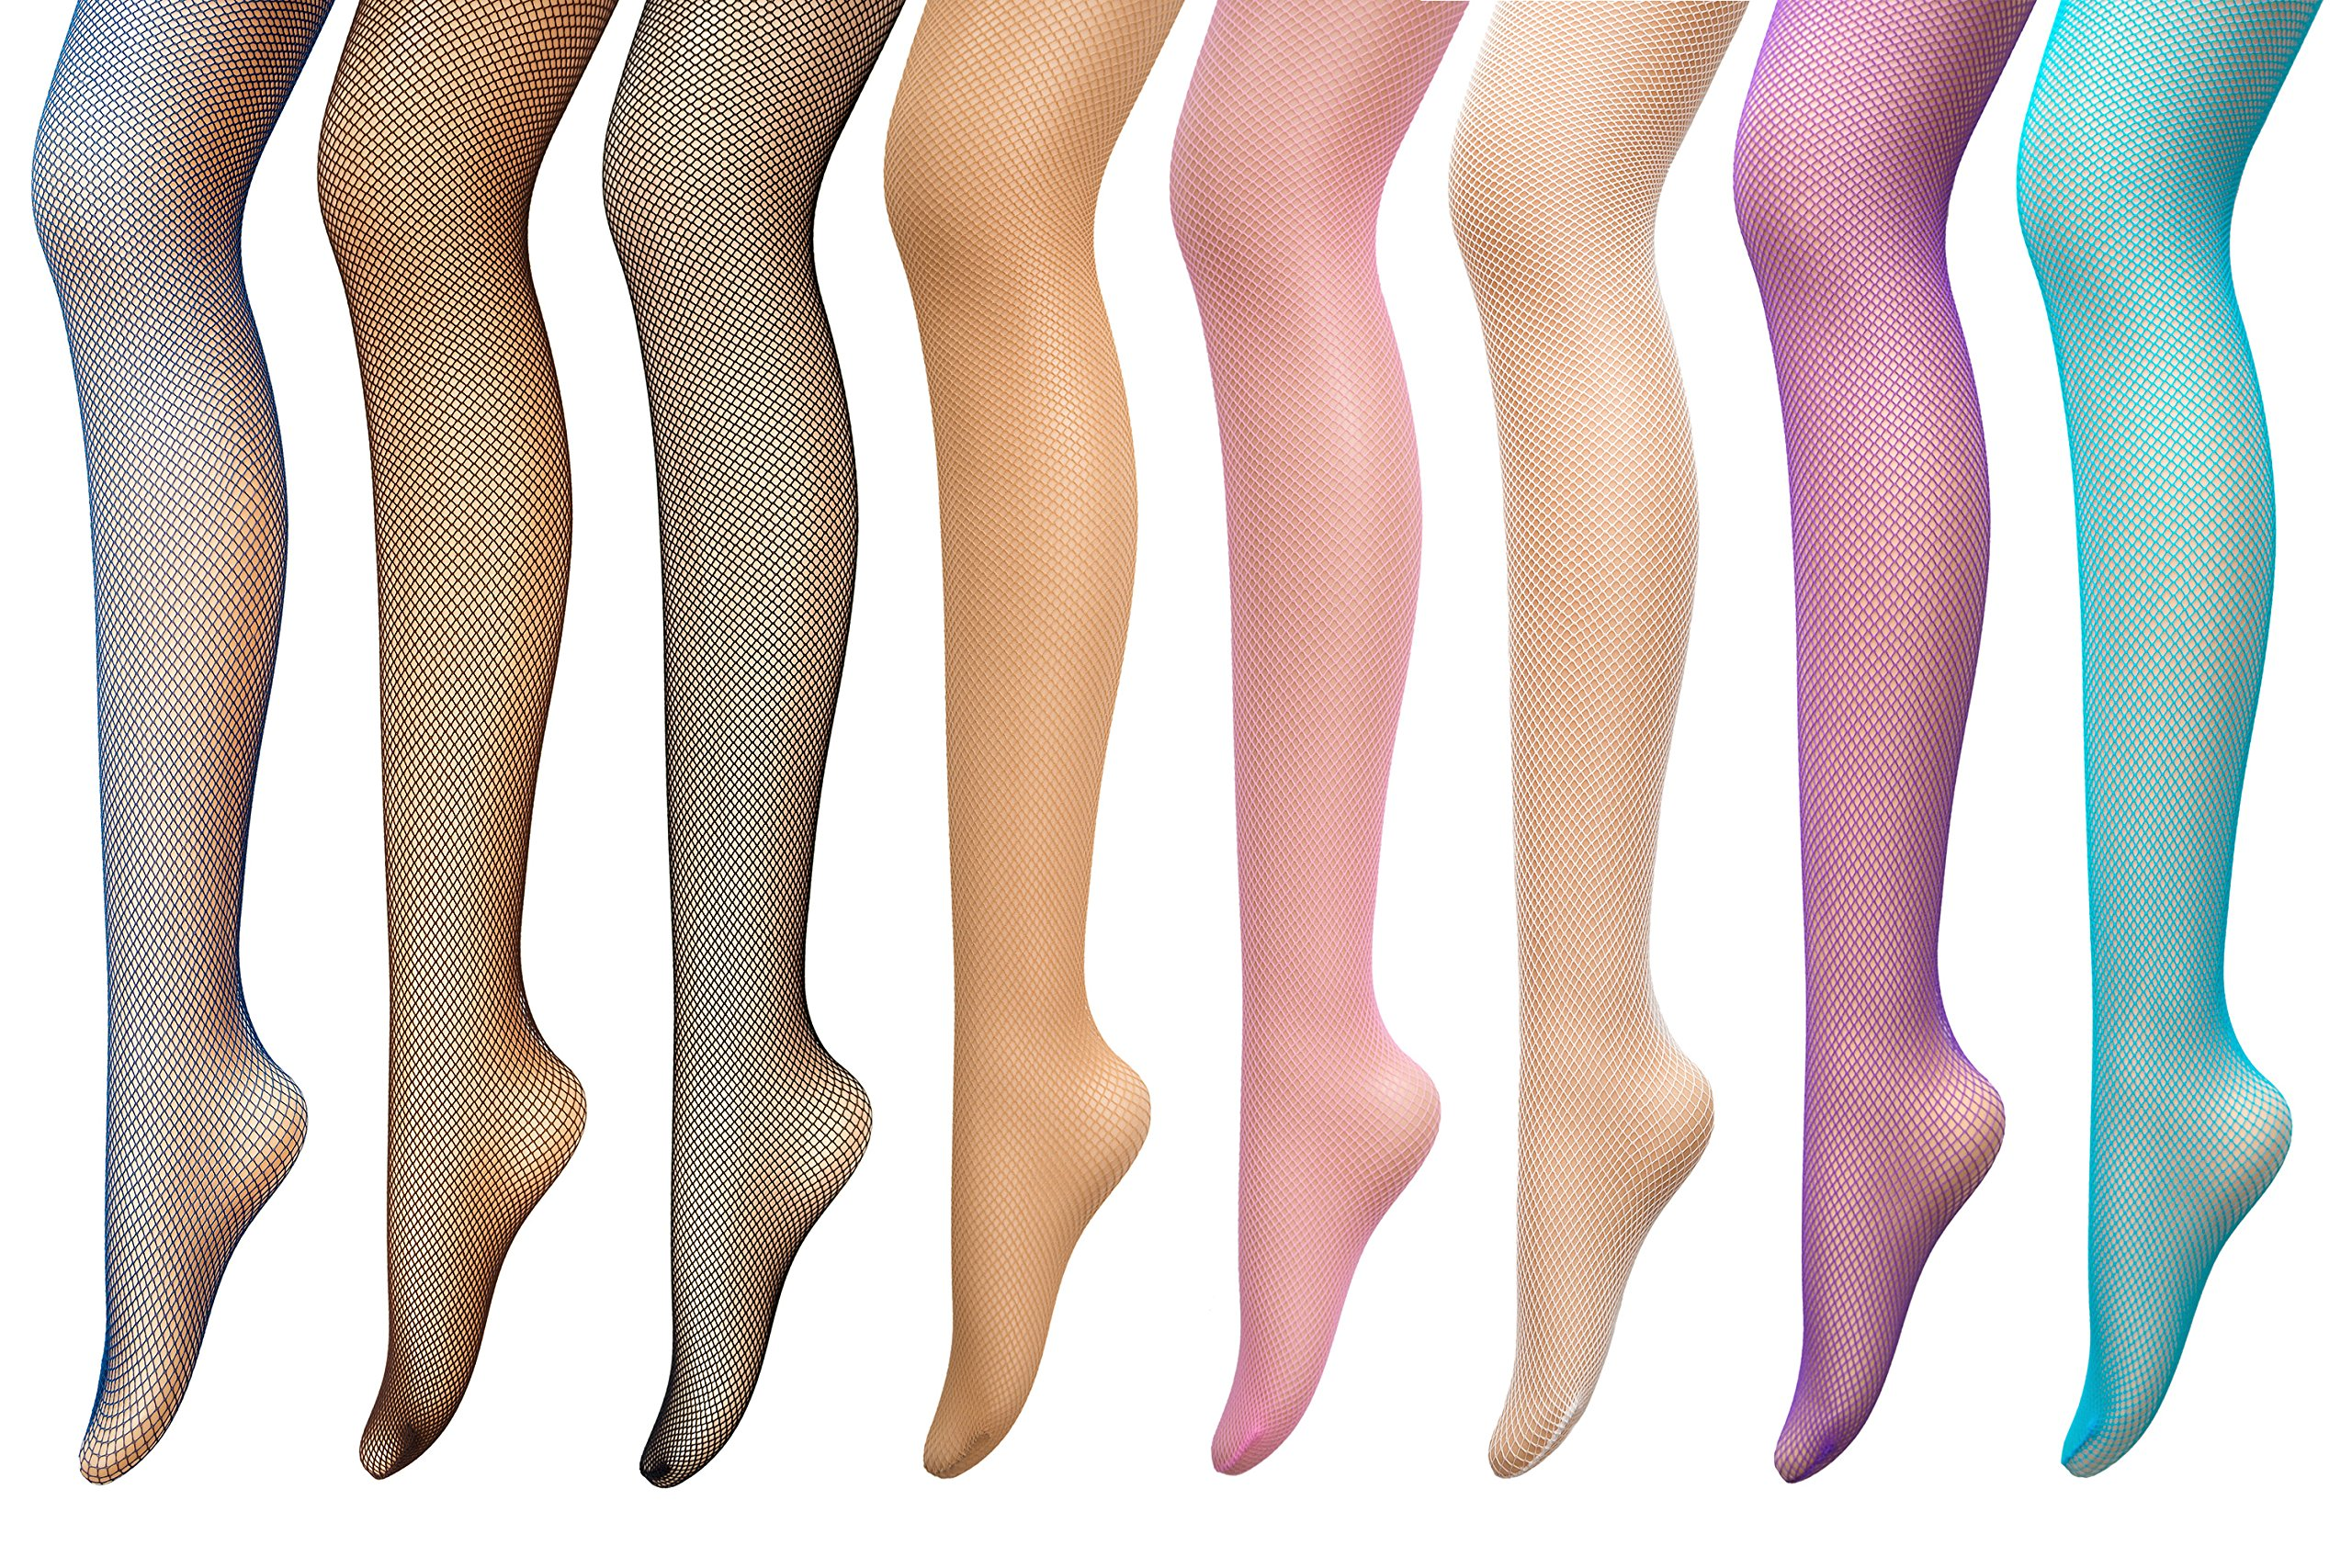 PreSox Fishnet Tights Seamless Nylon Mesh Stockings Control Top Sheer Pantyhose for Women Girls, One Size, 8p